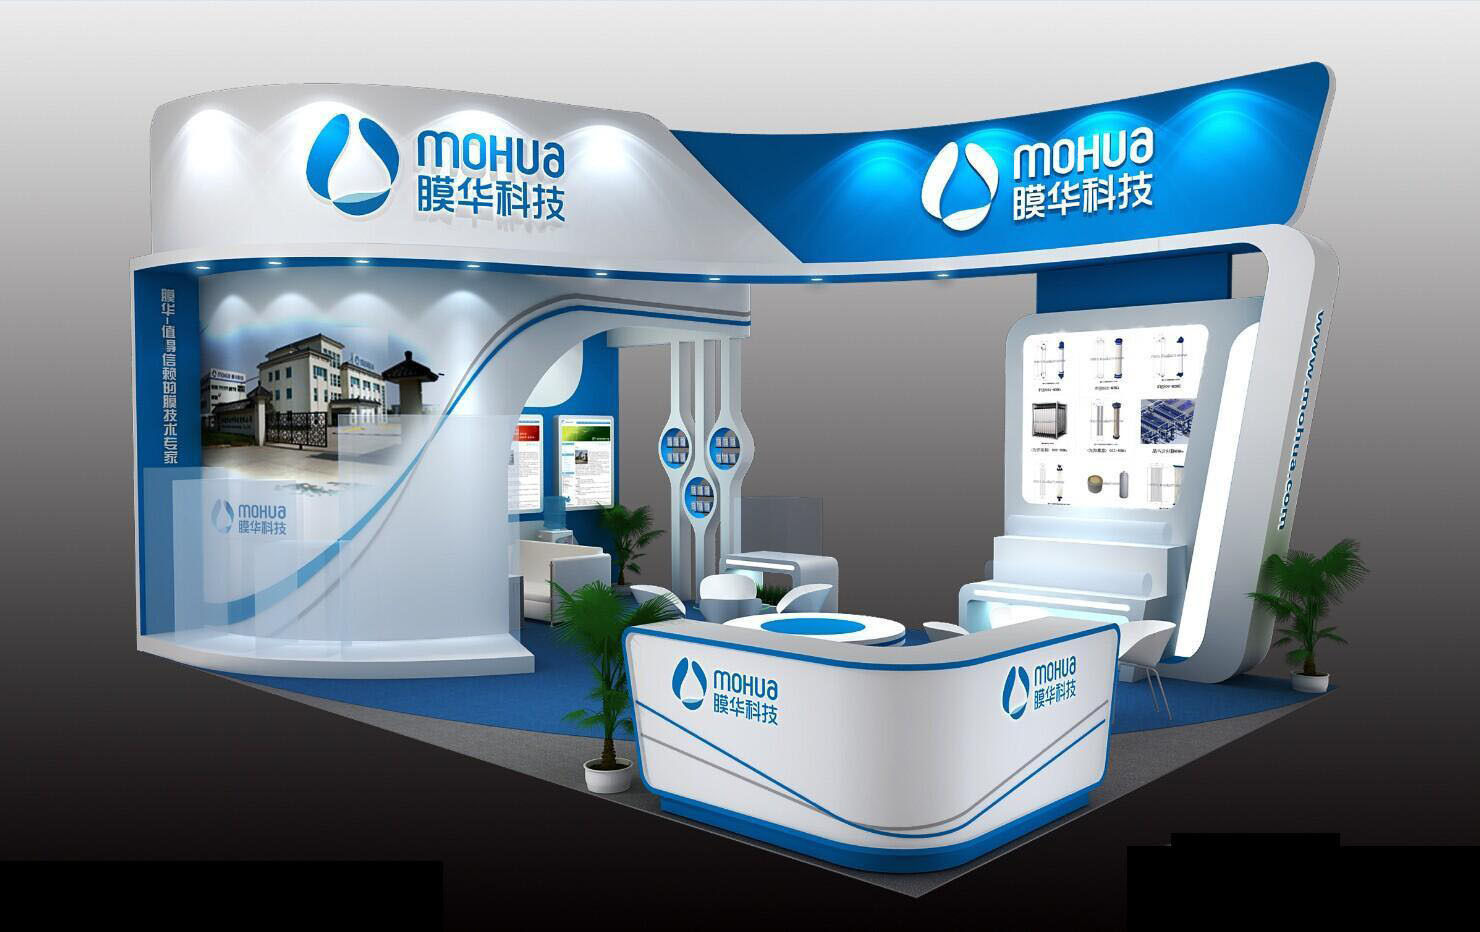 Exhibition Stand Designer Job Description : Mohua exhibition stall d model max cgtrader